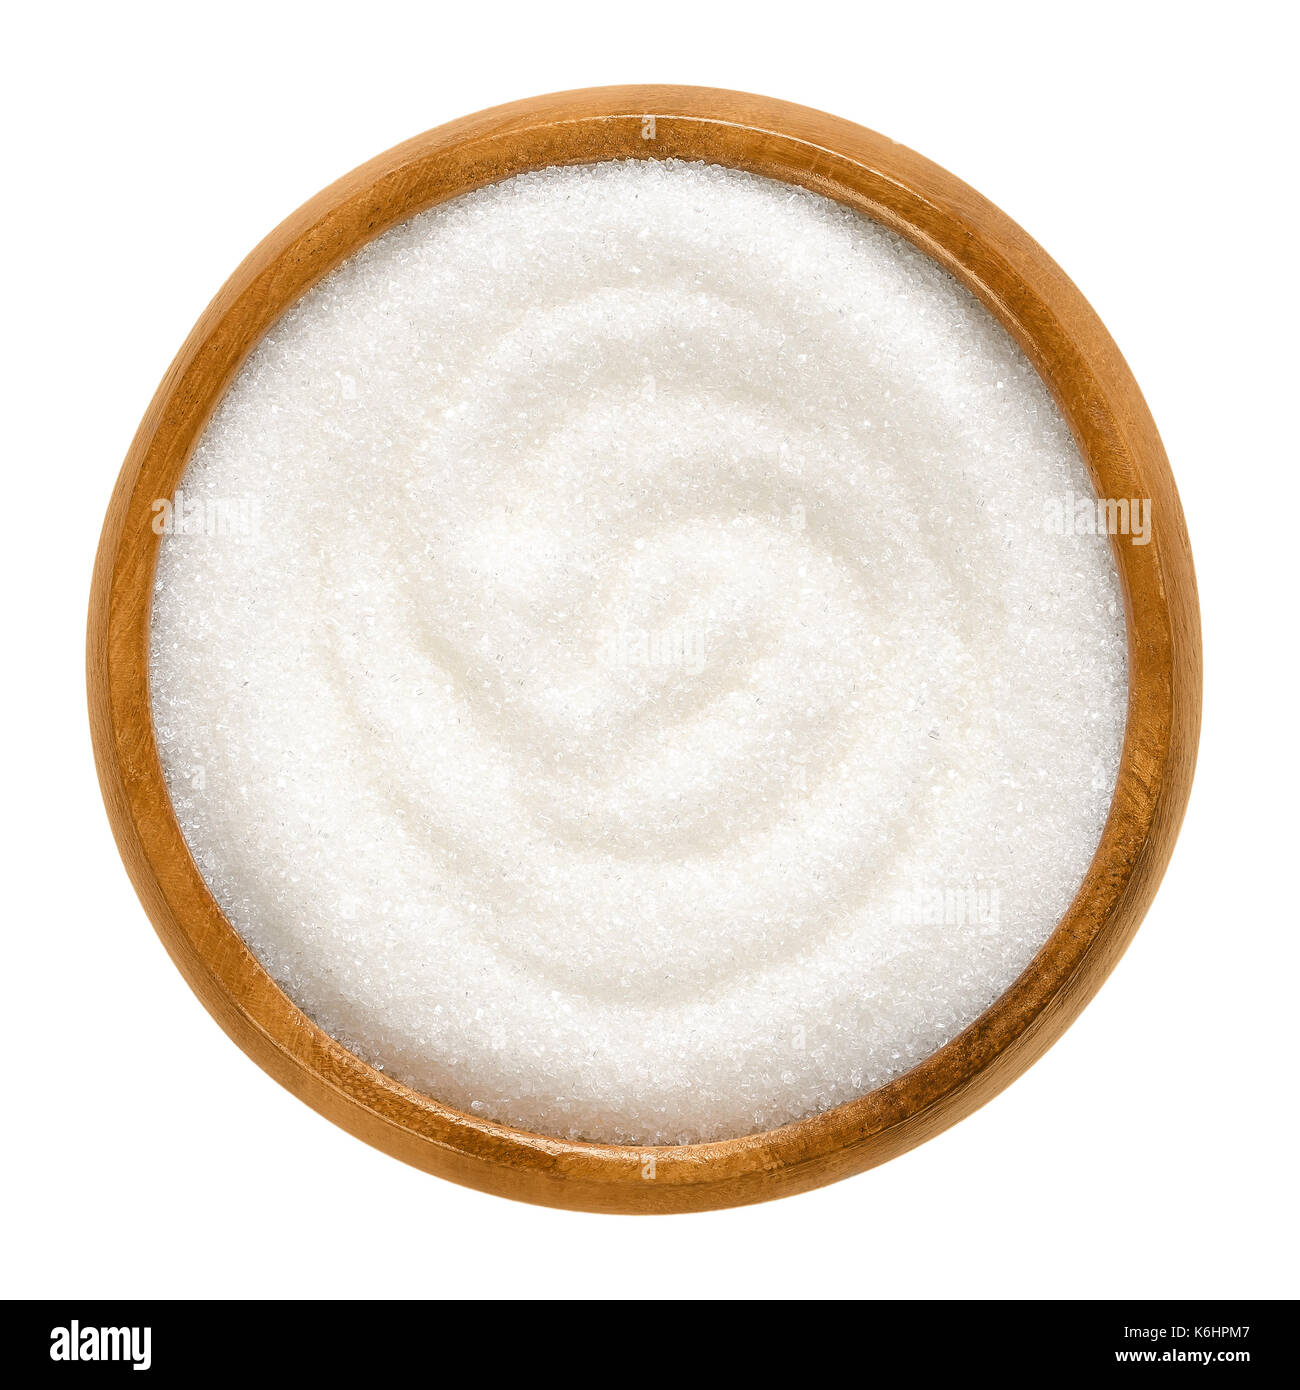 Fine granulated white sugar in wooden bowl. Crystals of refined table sugar. Sweet soluble carbohydrates. Sucrose. Macro photo. - Stock Image